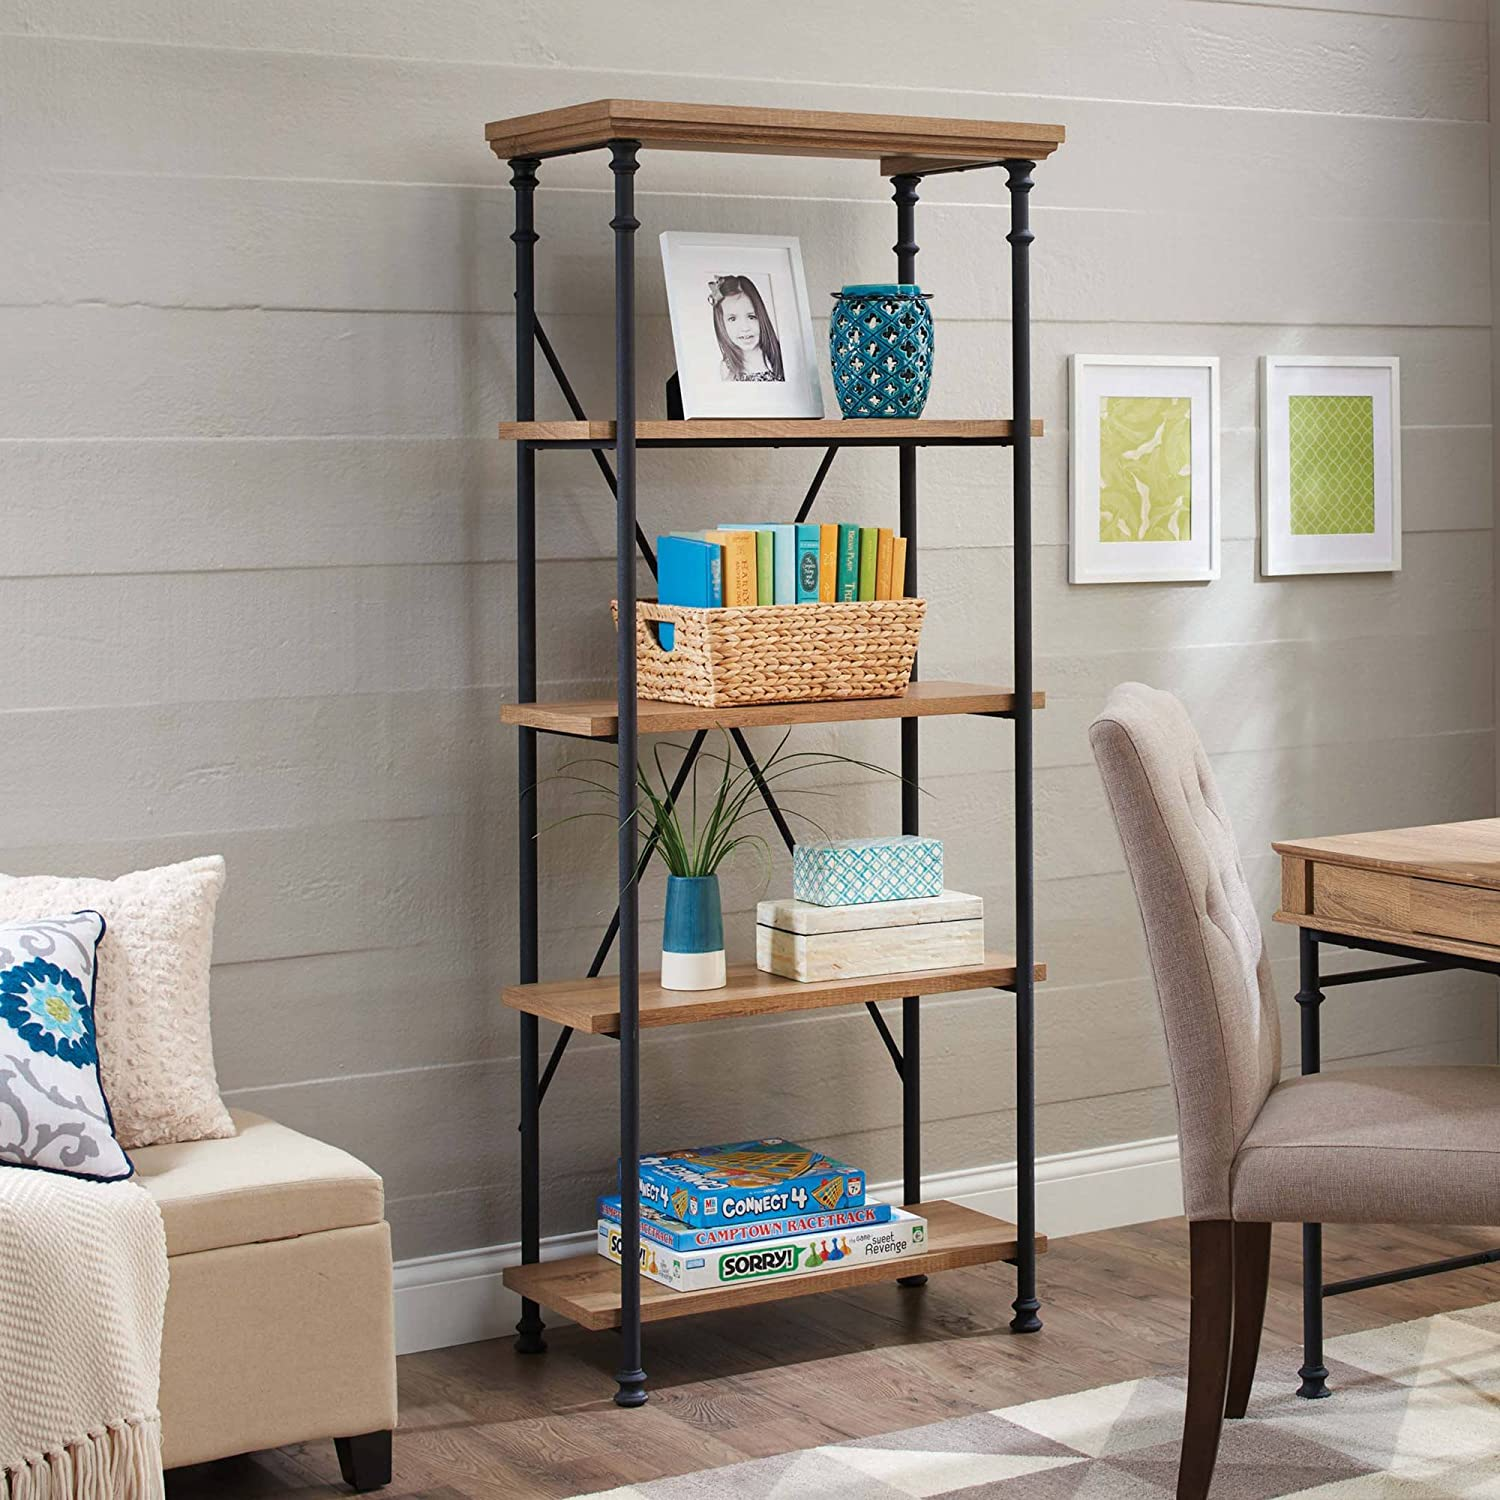 Amazon com  River Crest 5 Shelf Bookcase  Rustic Oak Finish by Better Homes  and Gardens   made of Wood   Metal  Kitchen   Dining. Amazon com  River Crest 5 Shelf Bookcase  Rustic Oak Finish by